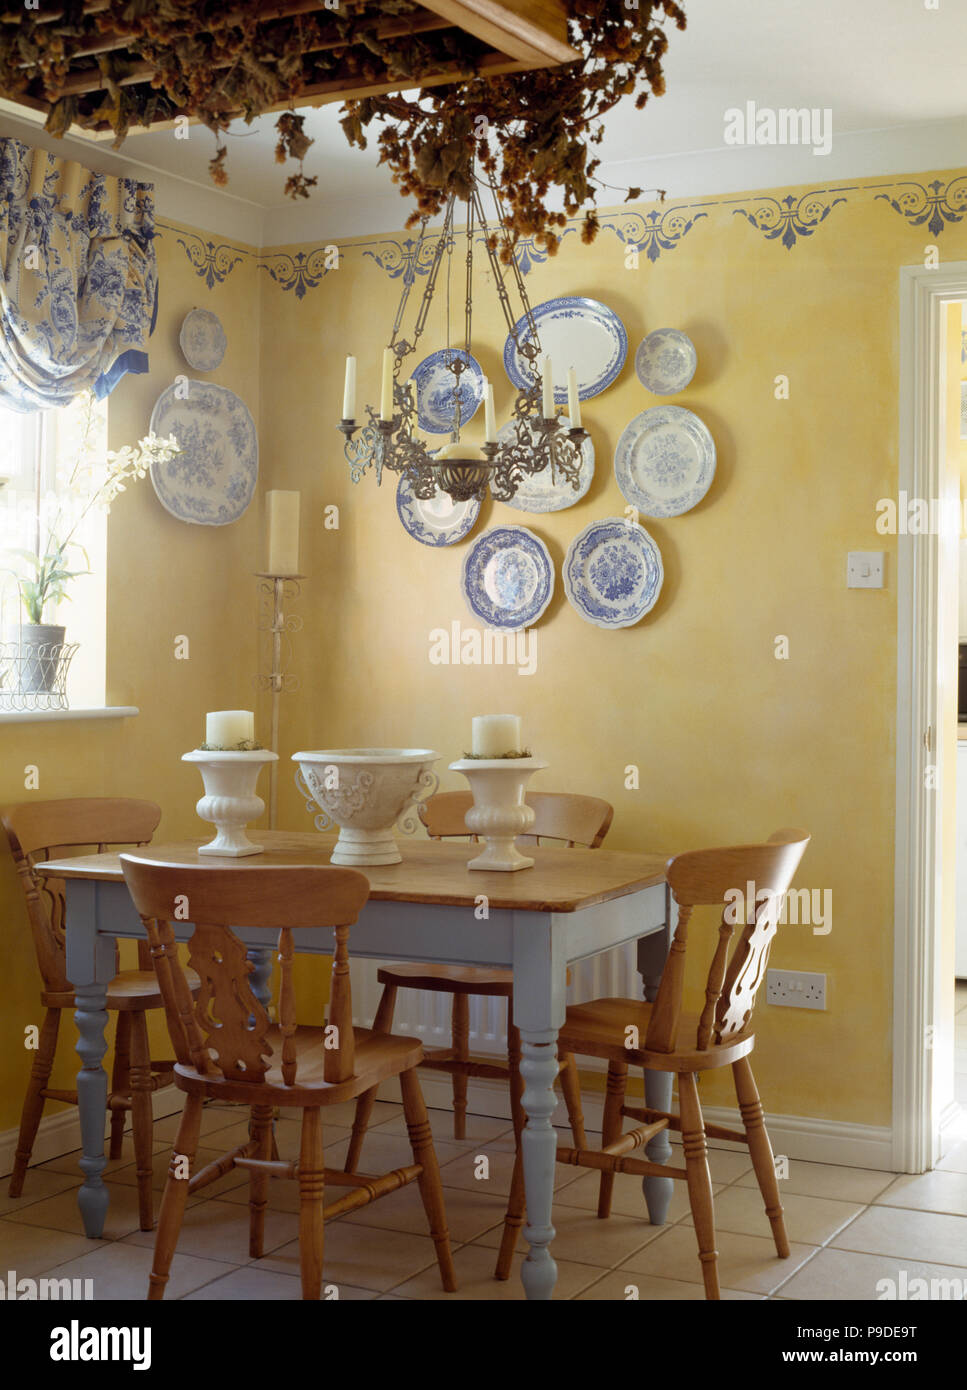 Pine Chairs And Painted Table In A Cottage Dining Room With A Collection Of Vintage Blue White Plates On The Wall Stock Photo Alamy